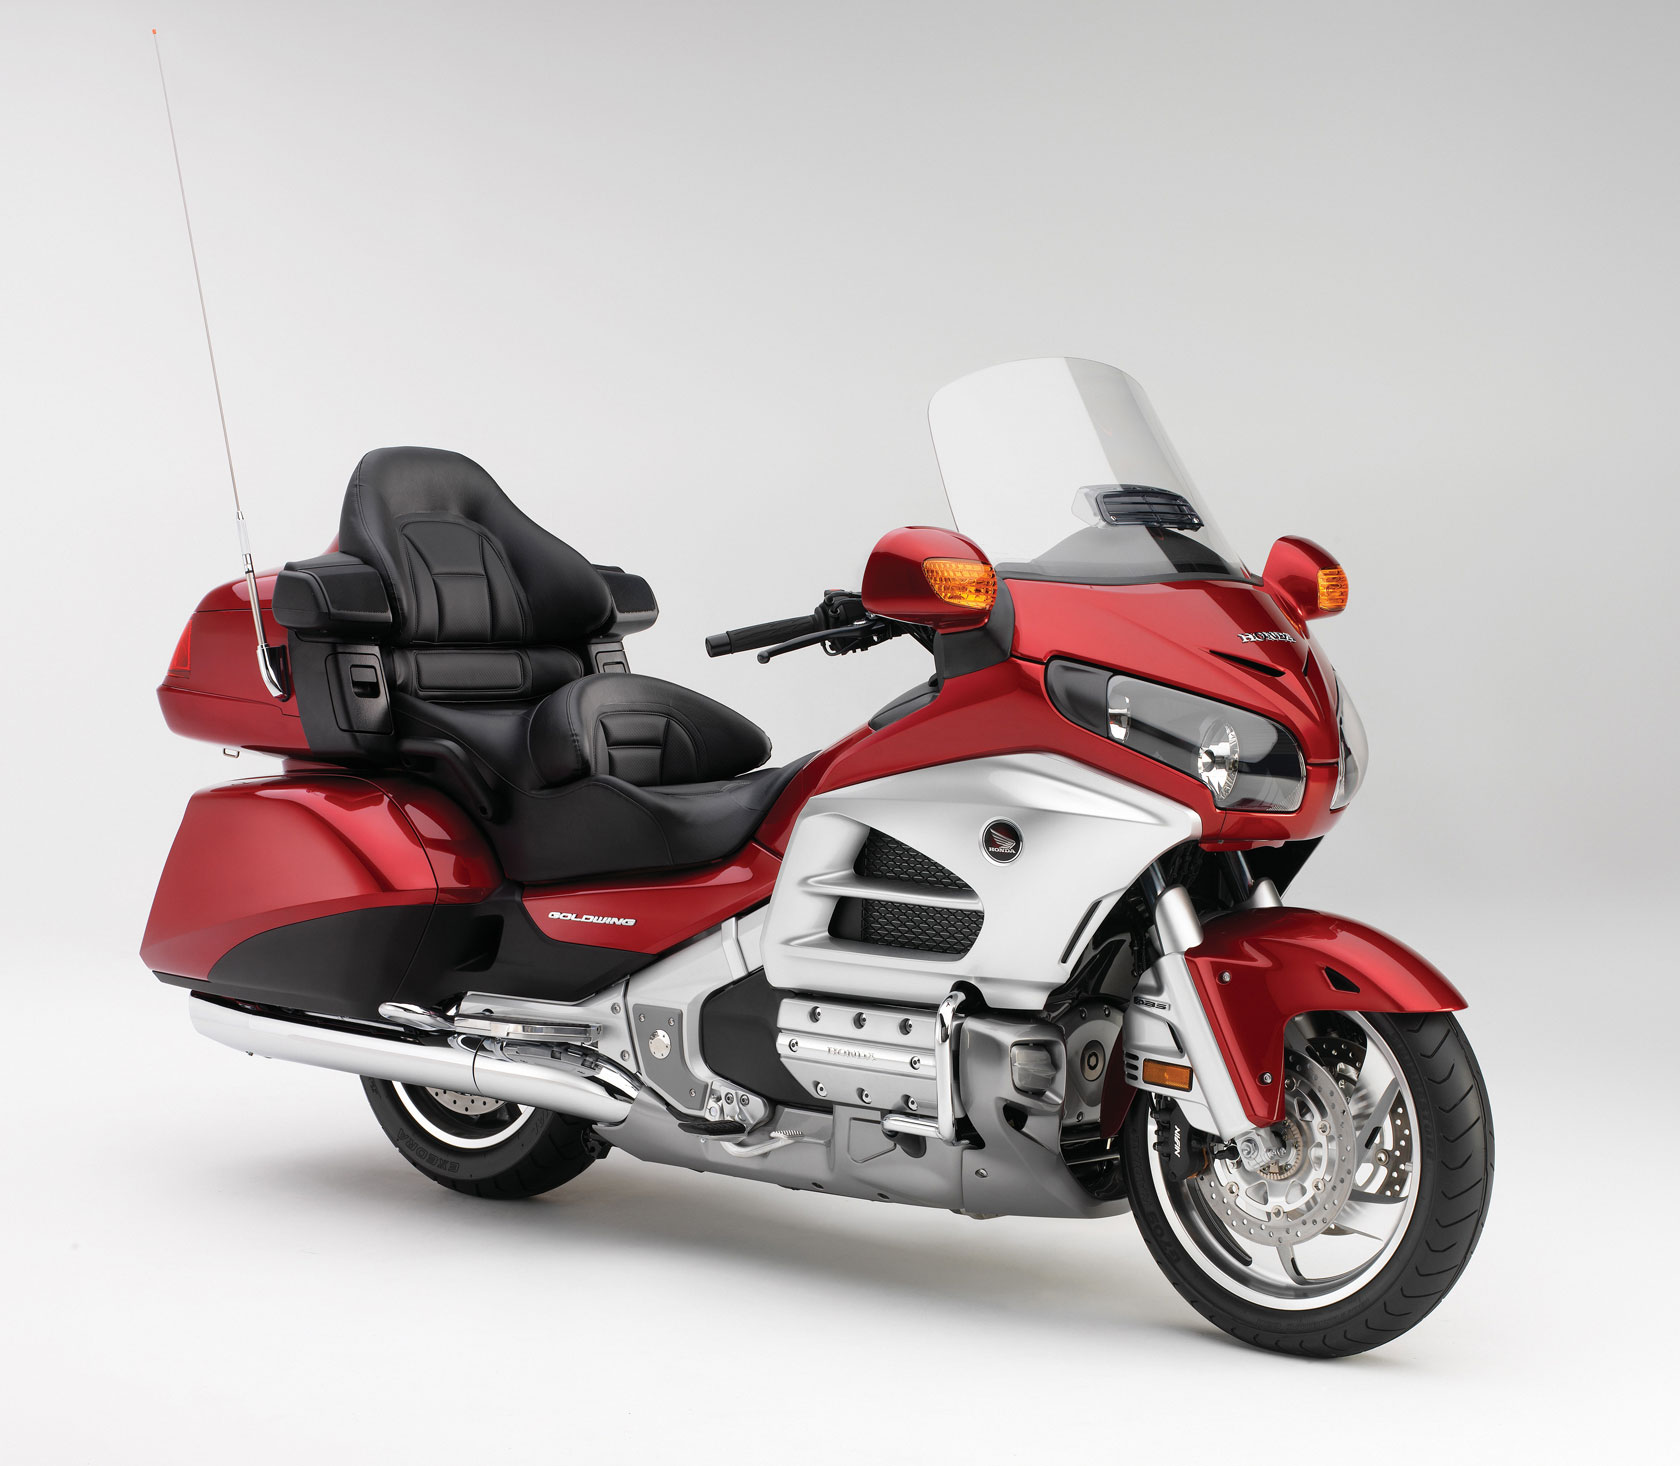 Honda GL 1800 Gold Wing 2004 images #82714